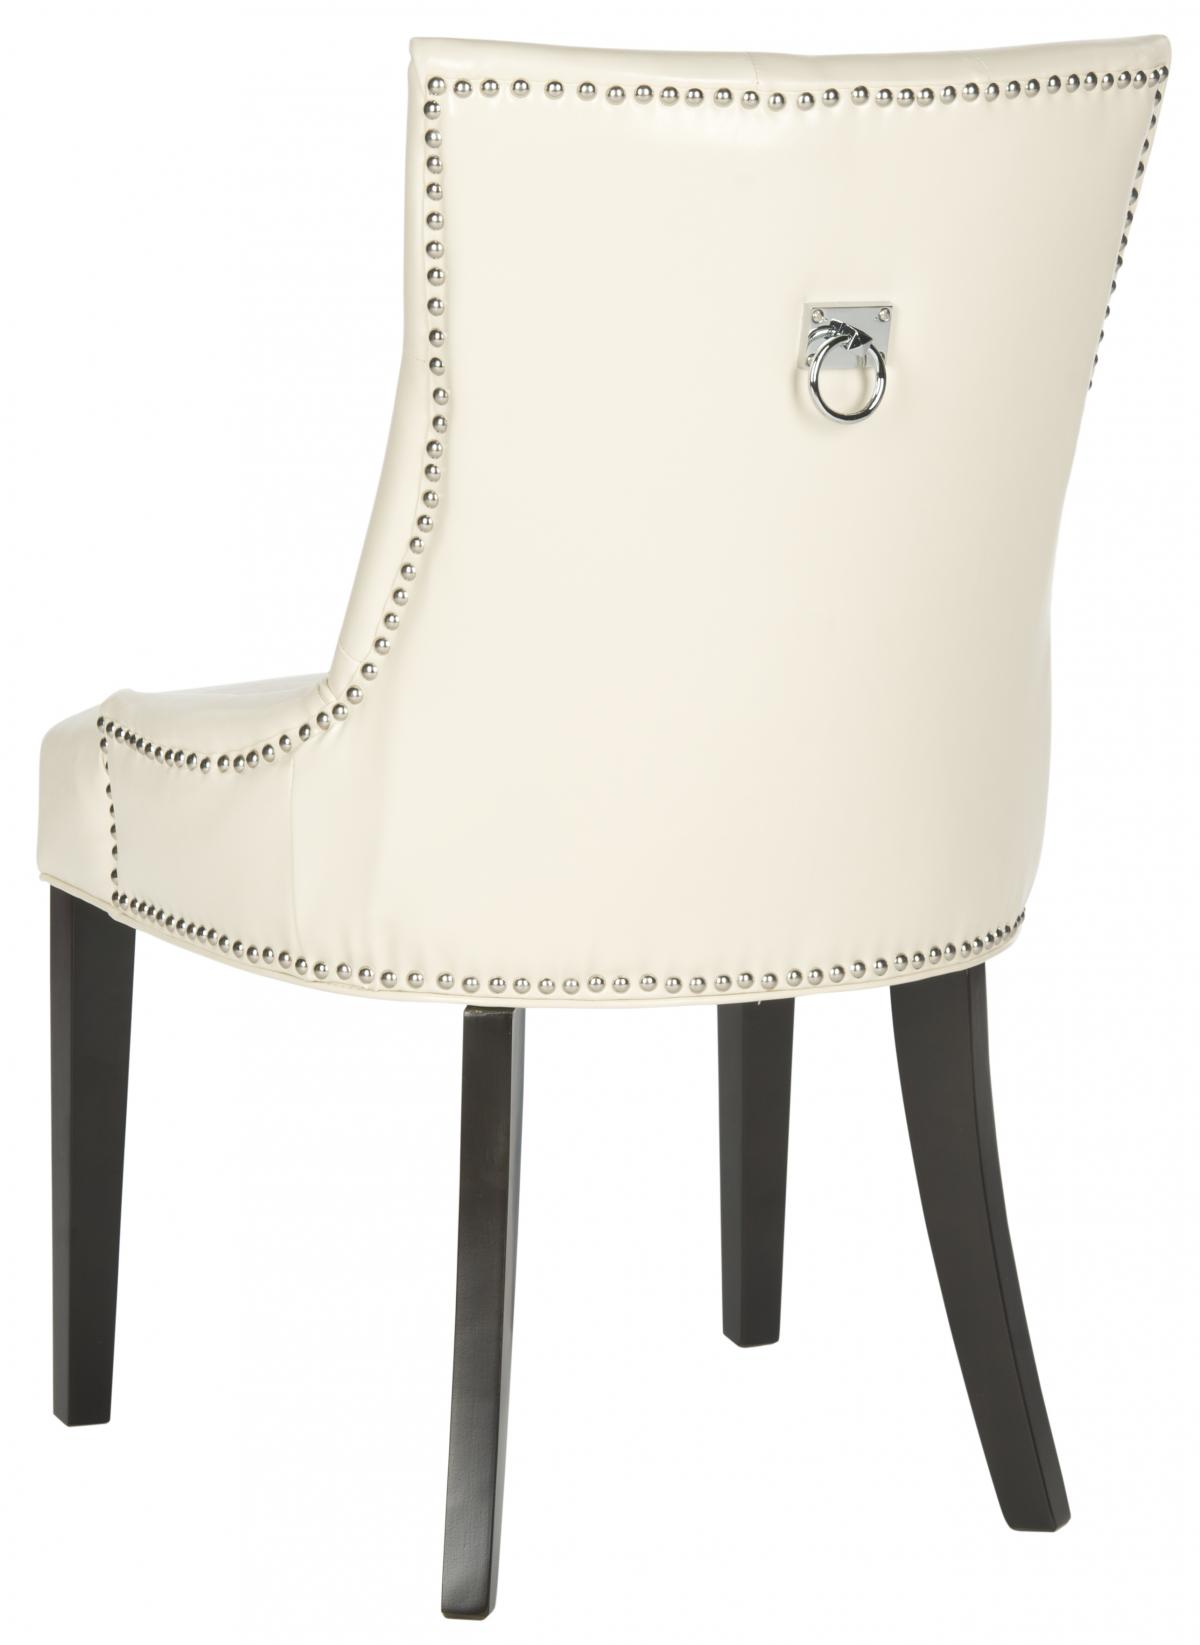 Off white parson chairs on sale now 10 off office star for Pier import lorient